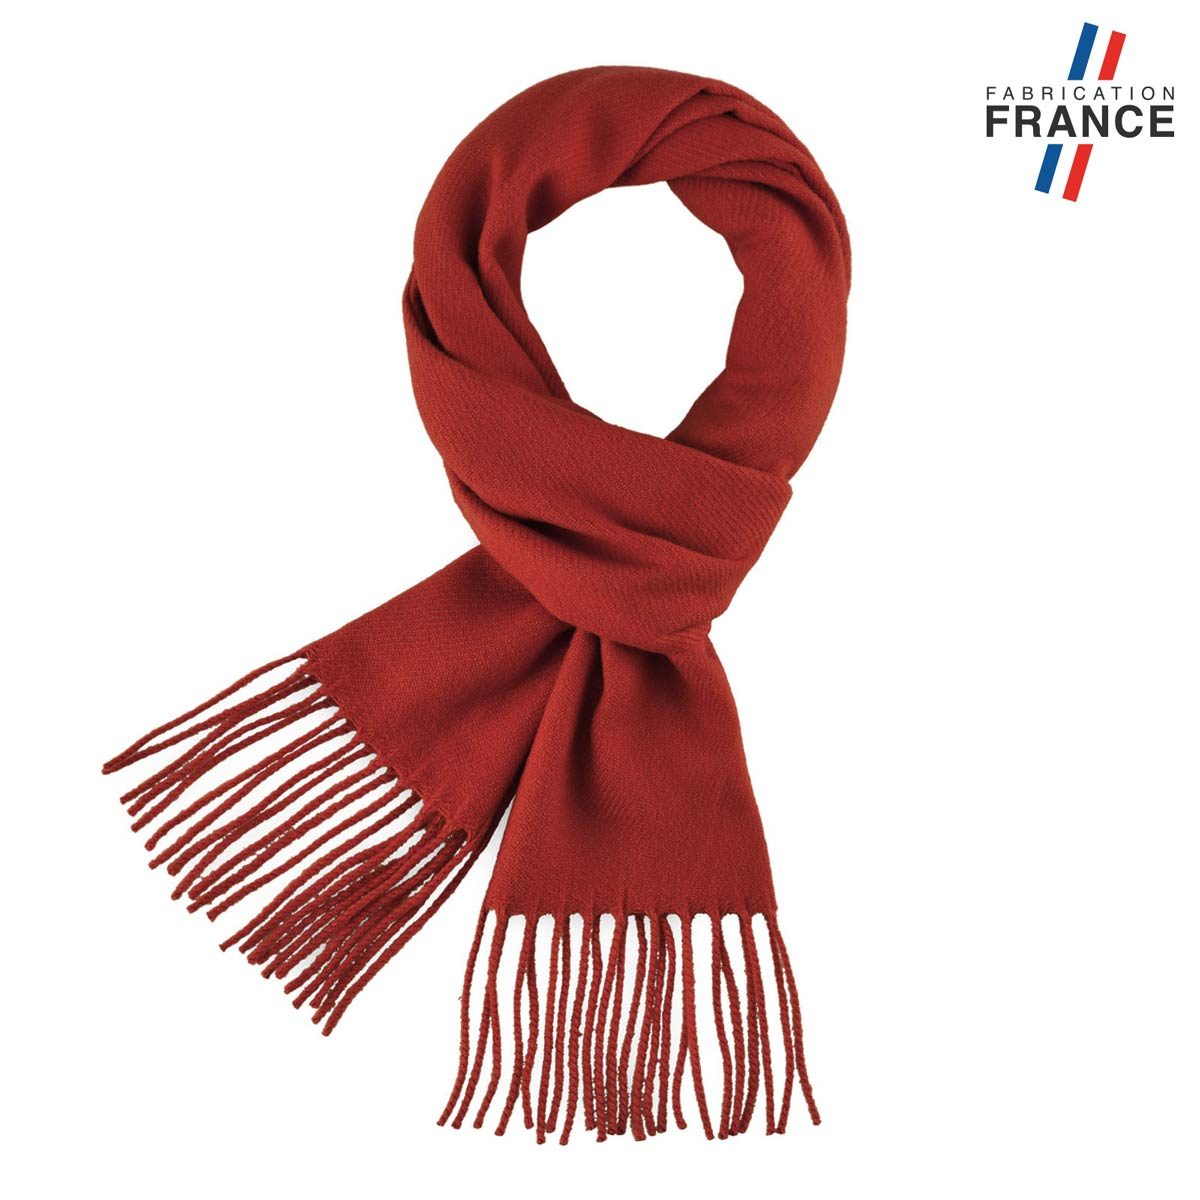 AT-06572_F12-1FR_Echarpe-franges-rouge-baisers-fabrication-francaise